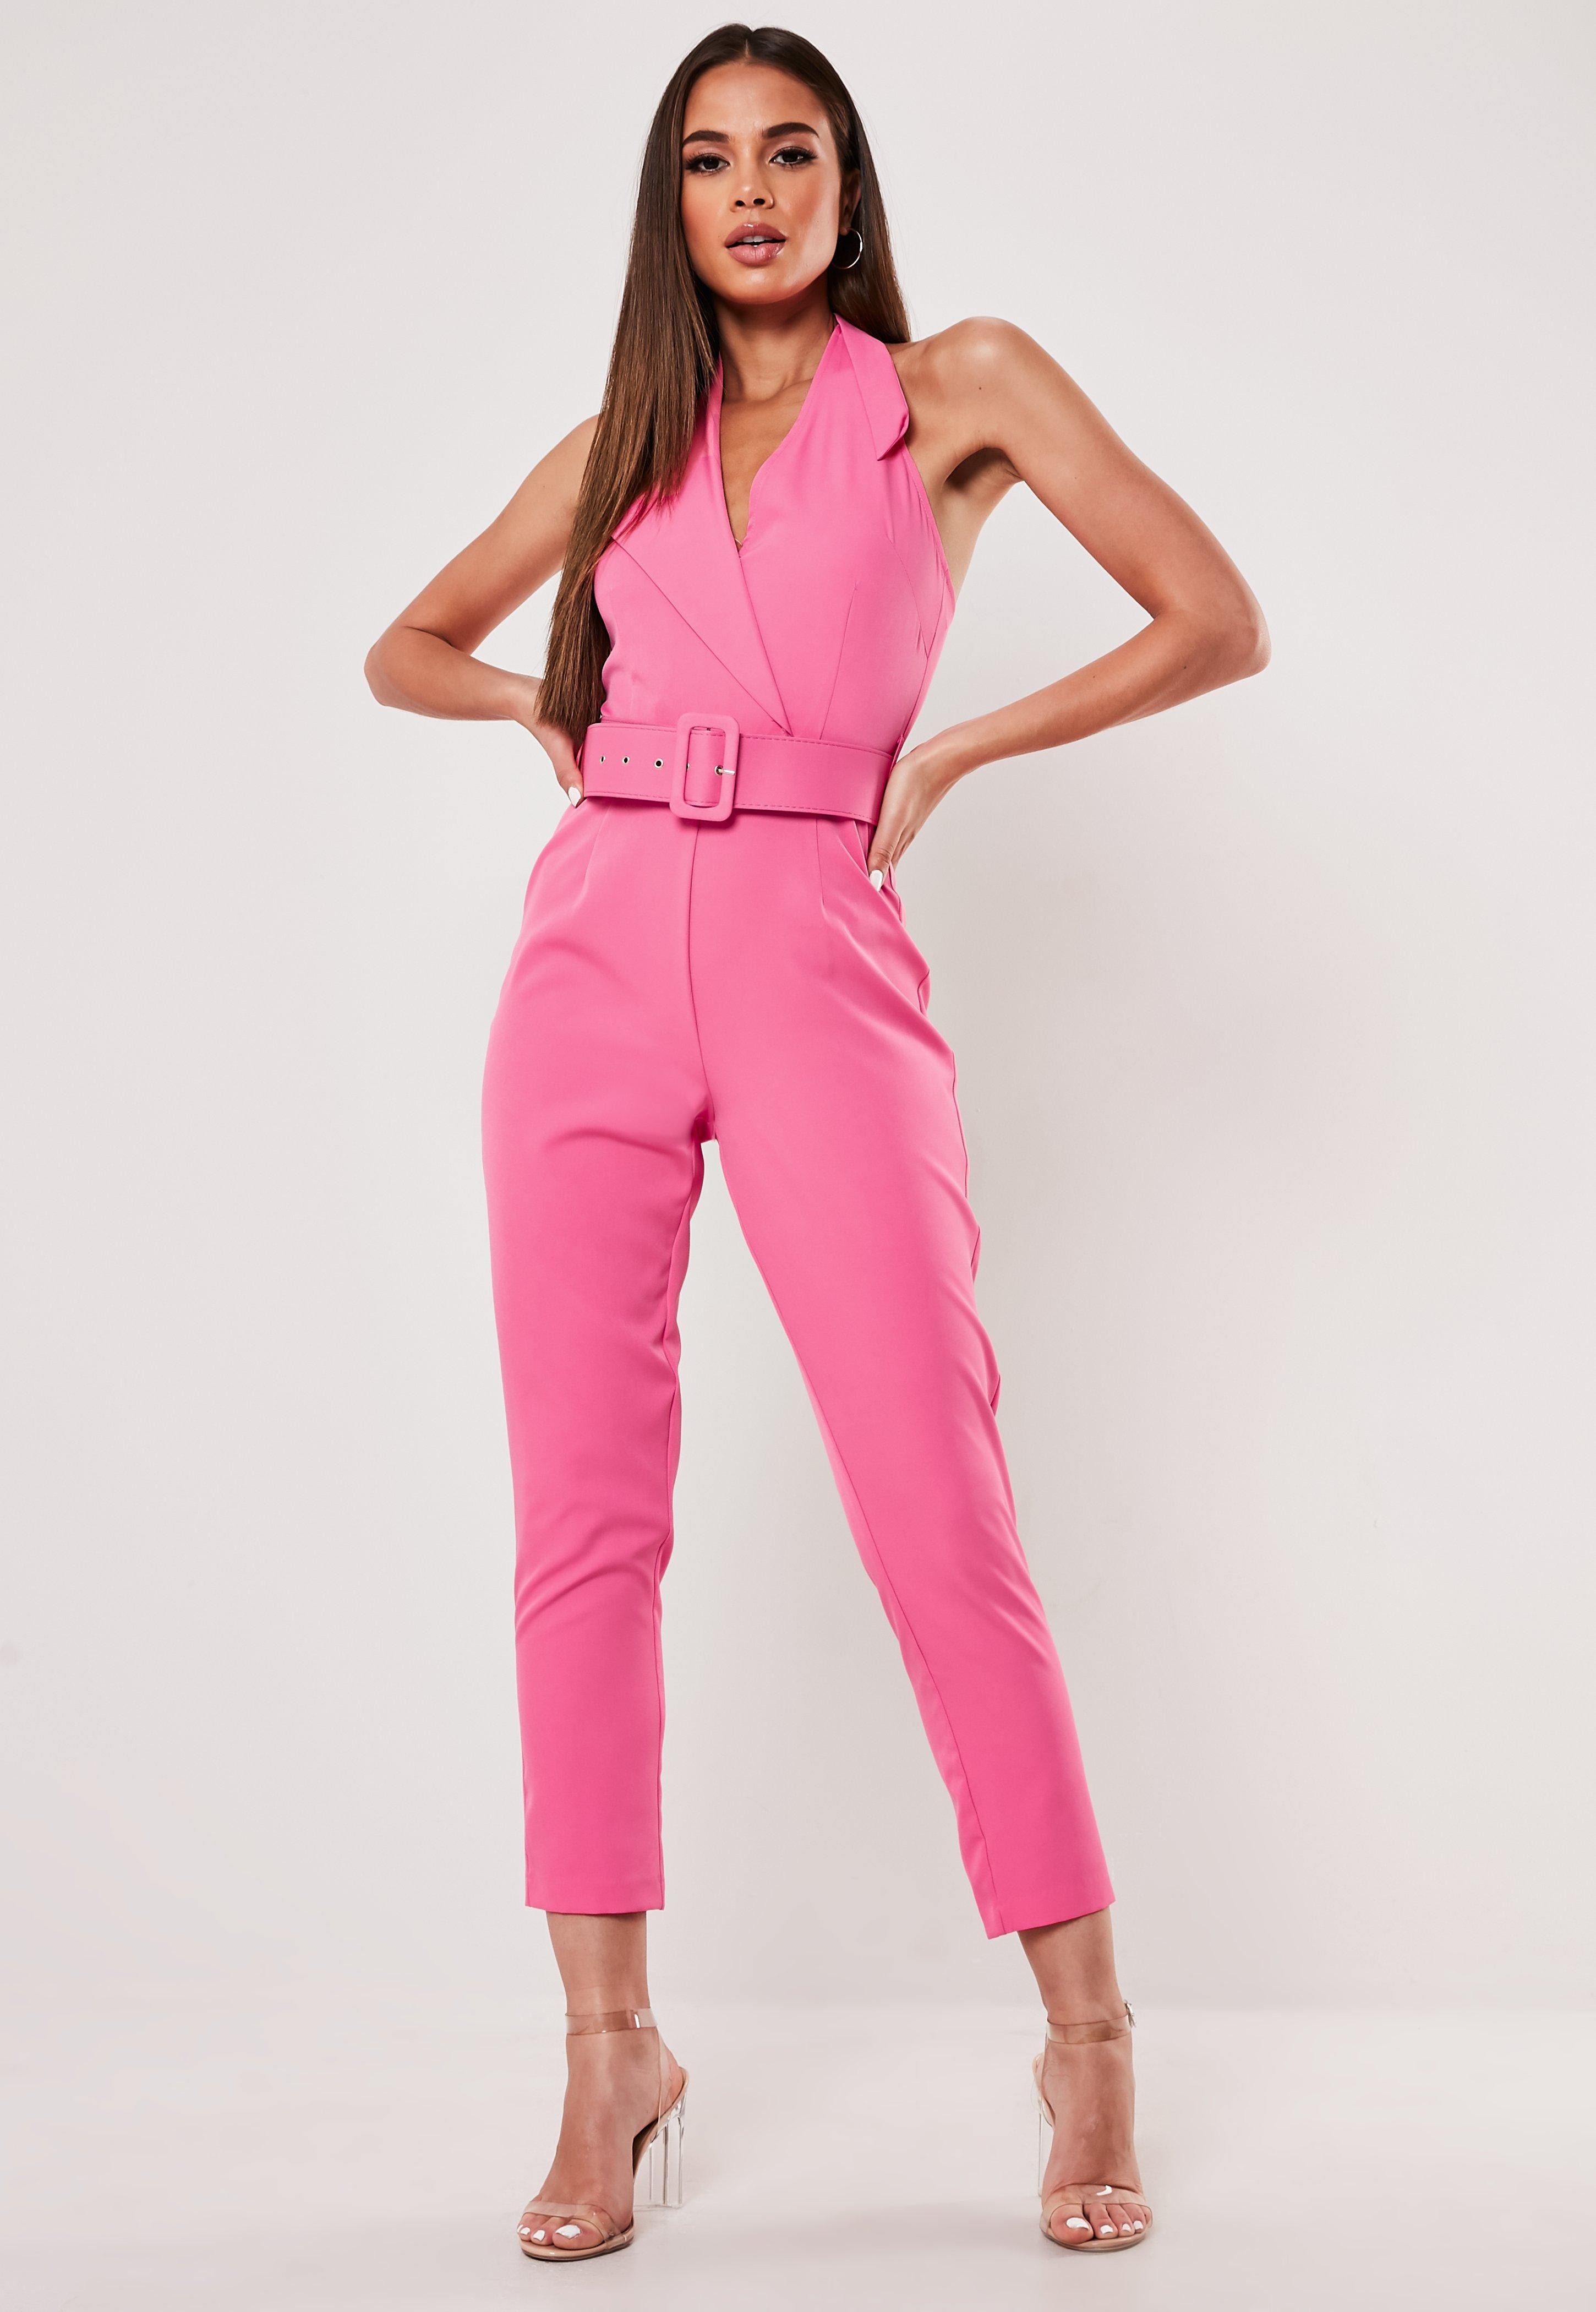 4409bb2c7ac3f Jumpsuits | Shop Jumpsuits for Women | Missguided